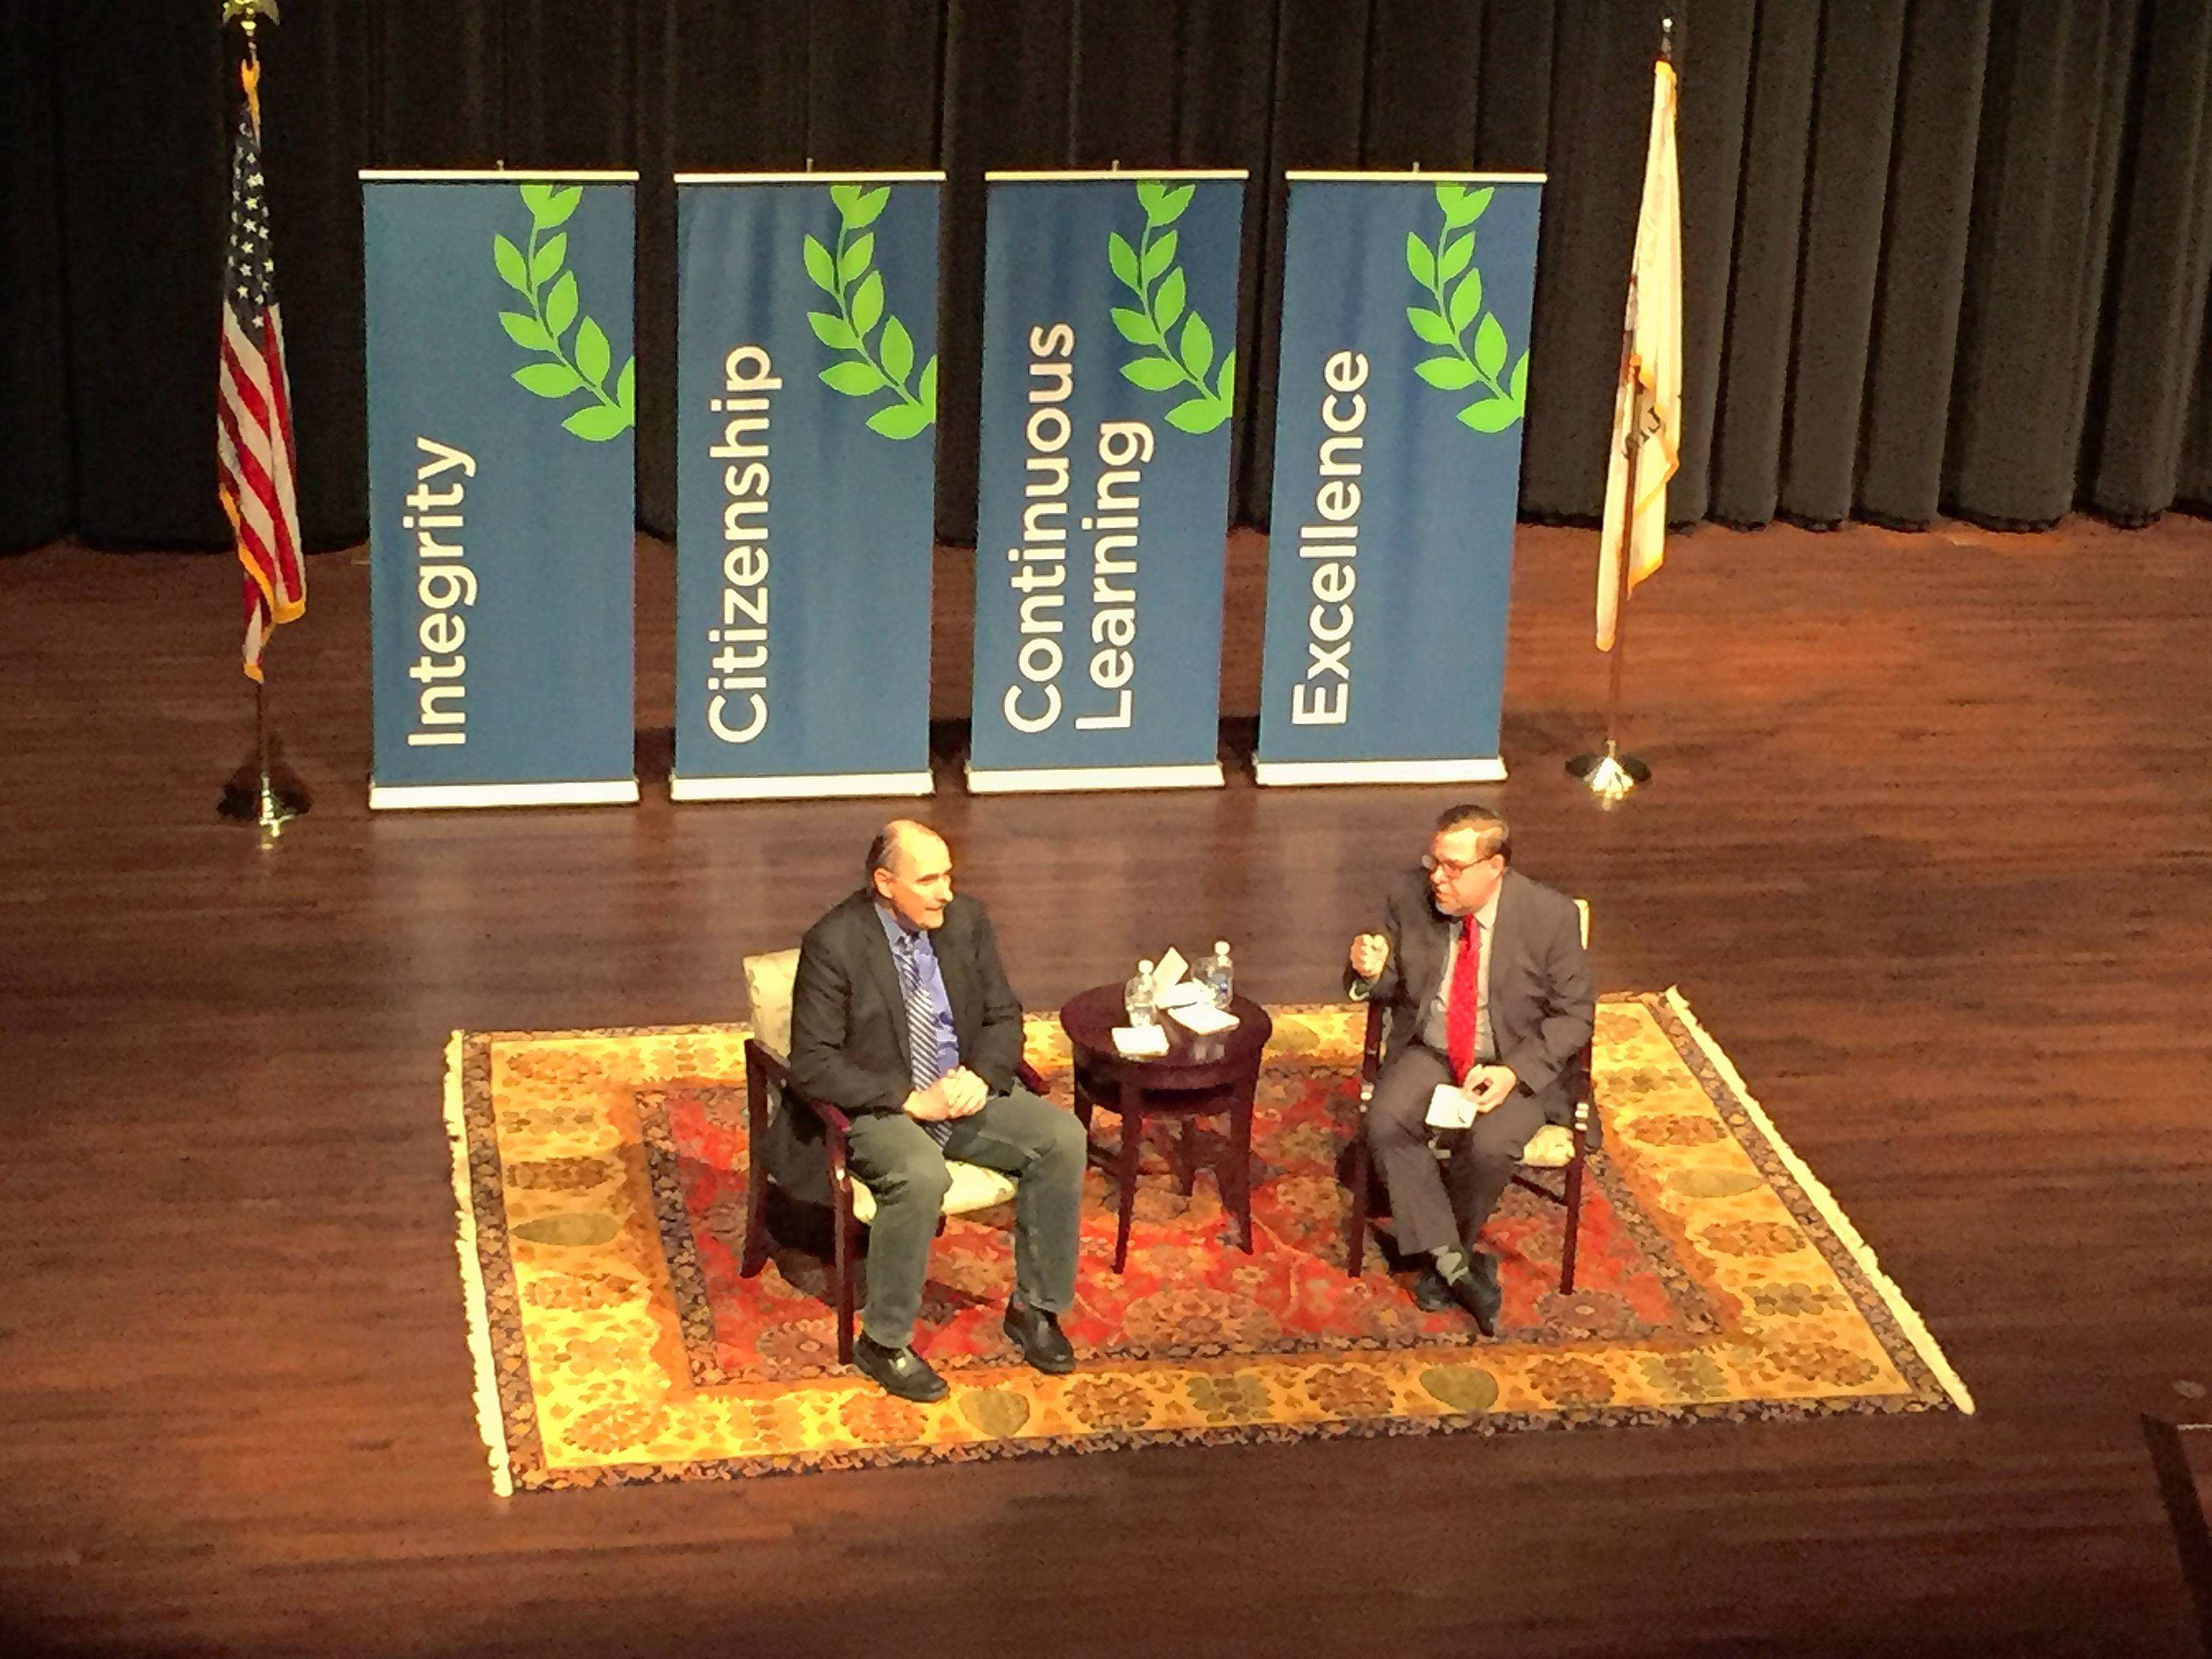 CNN pundit and University of Chicago alumnus David Axelrod, left, shared his thoughts on Donald Trump, Hillary Clinton and his years as an adviser to Barack Obama in a public Q&A Thursday night with Chicago Tribune political reporter Rick Pearson at Aurora University Thursday.